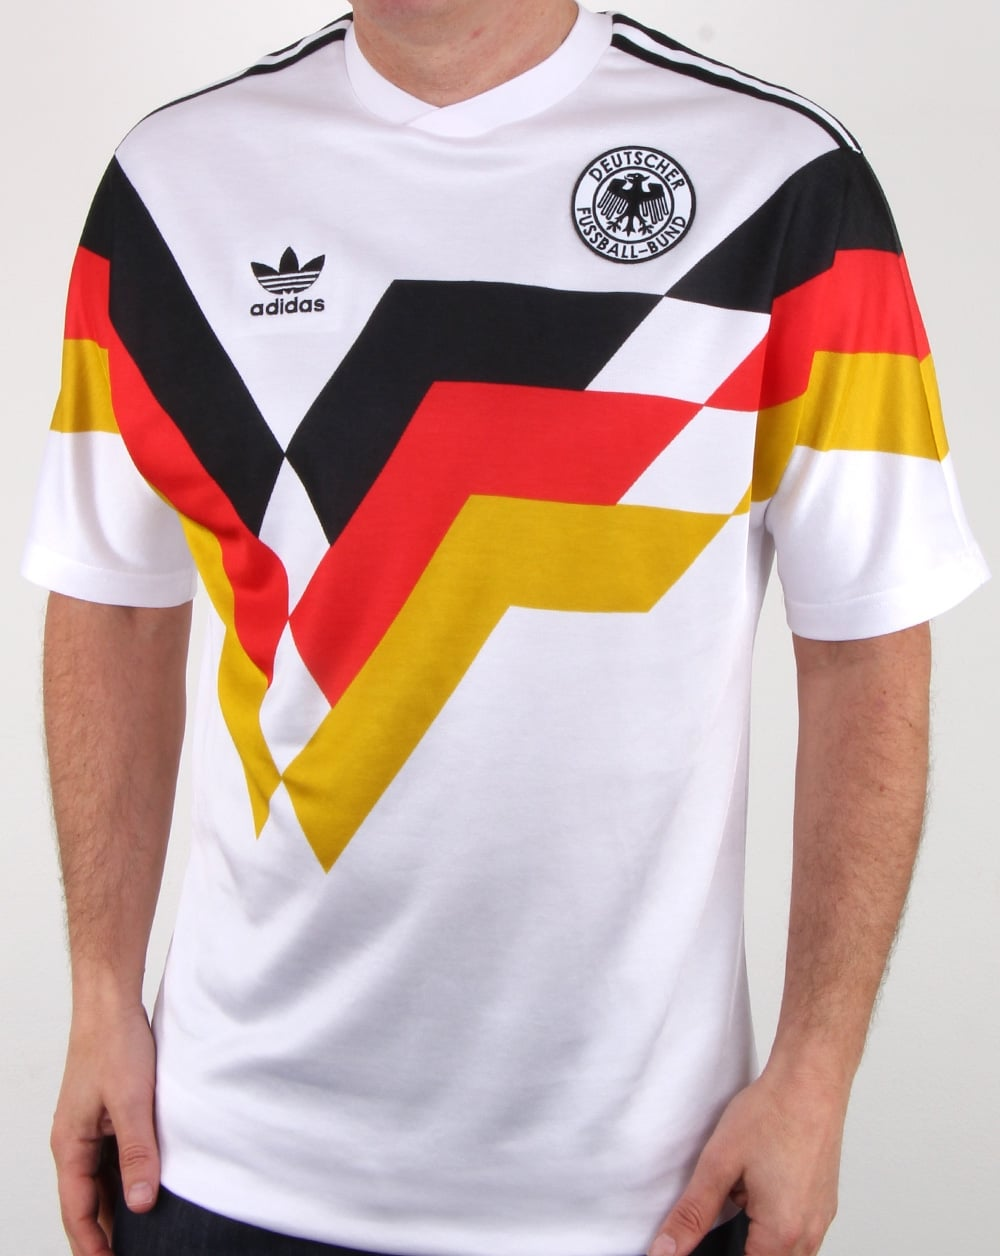 ADIDAS ORIGINALS GERMANY HOME JERSEY FIFA WORLD CUP 1990.